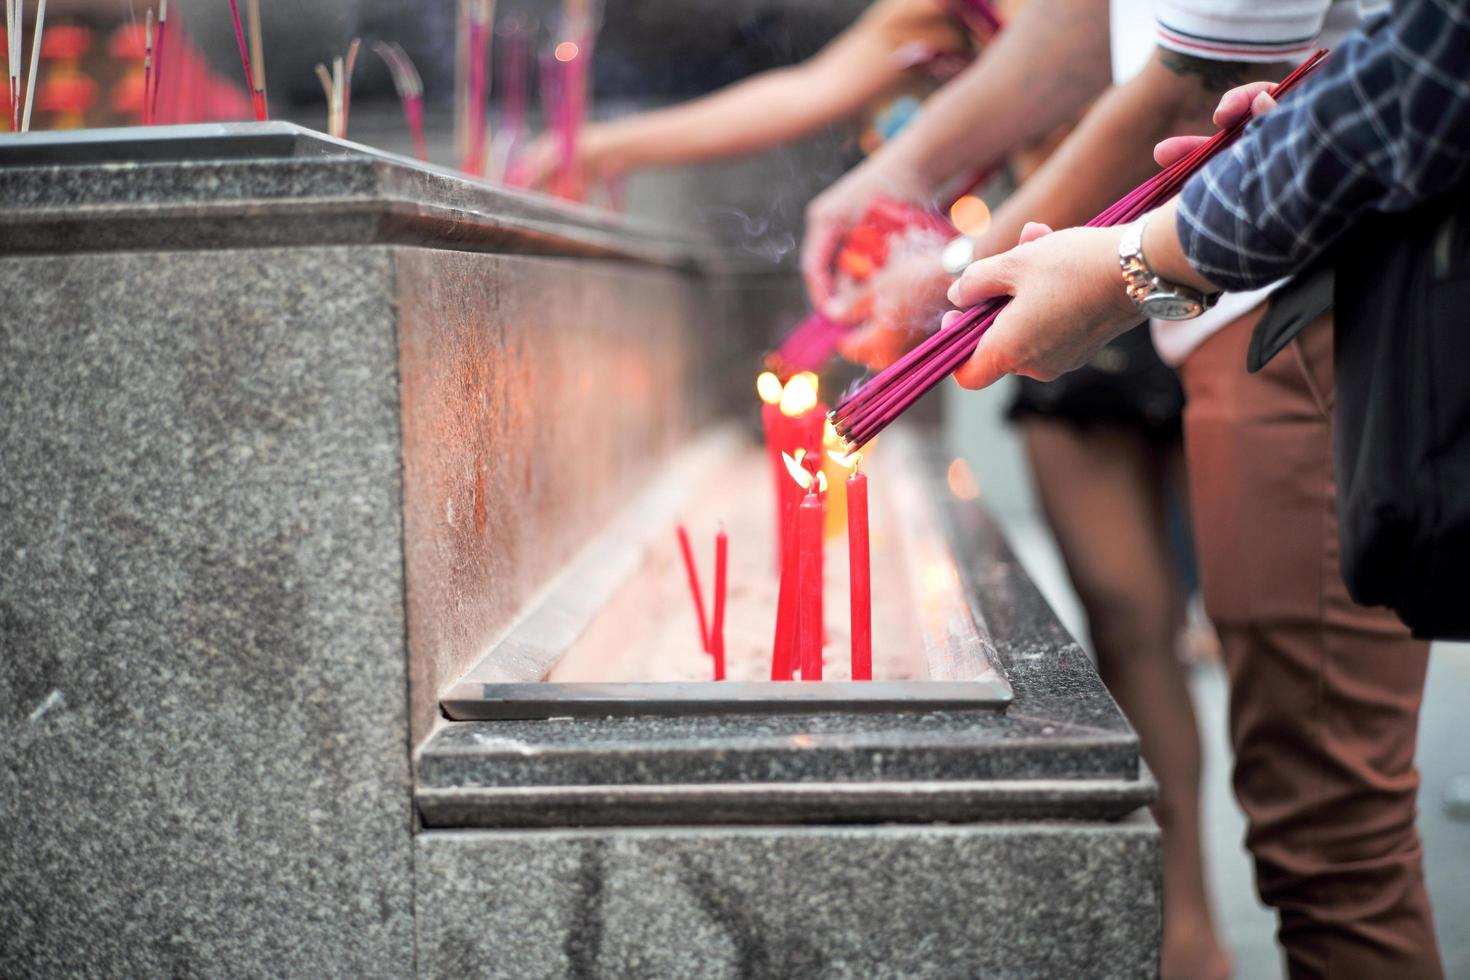 Closeup hands holding the bundle of incenses for lighting with candles in the sand tray photo